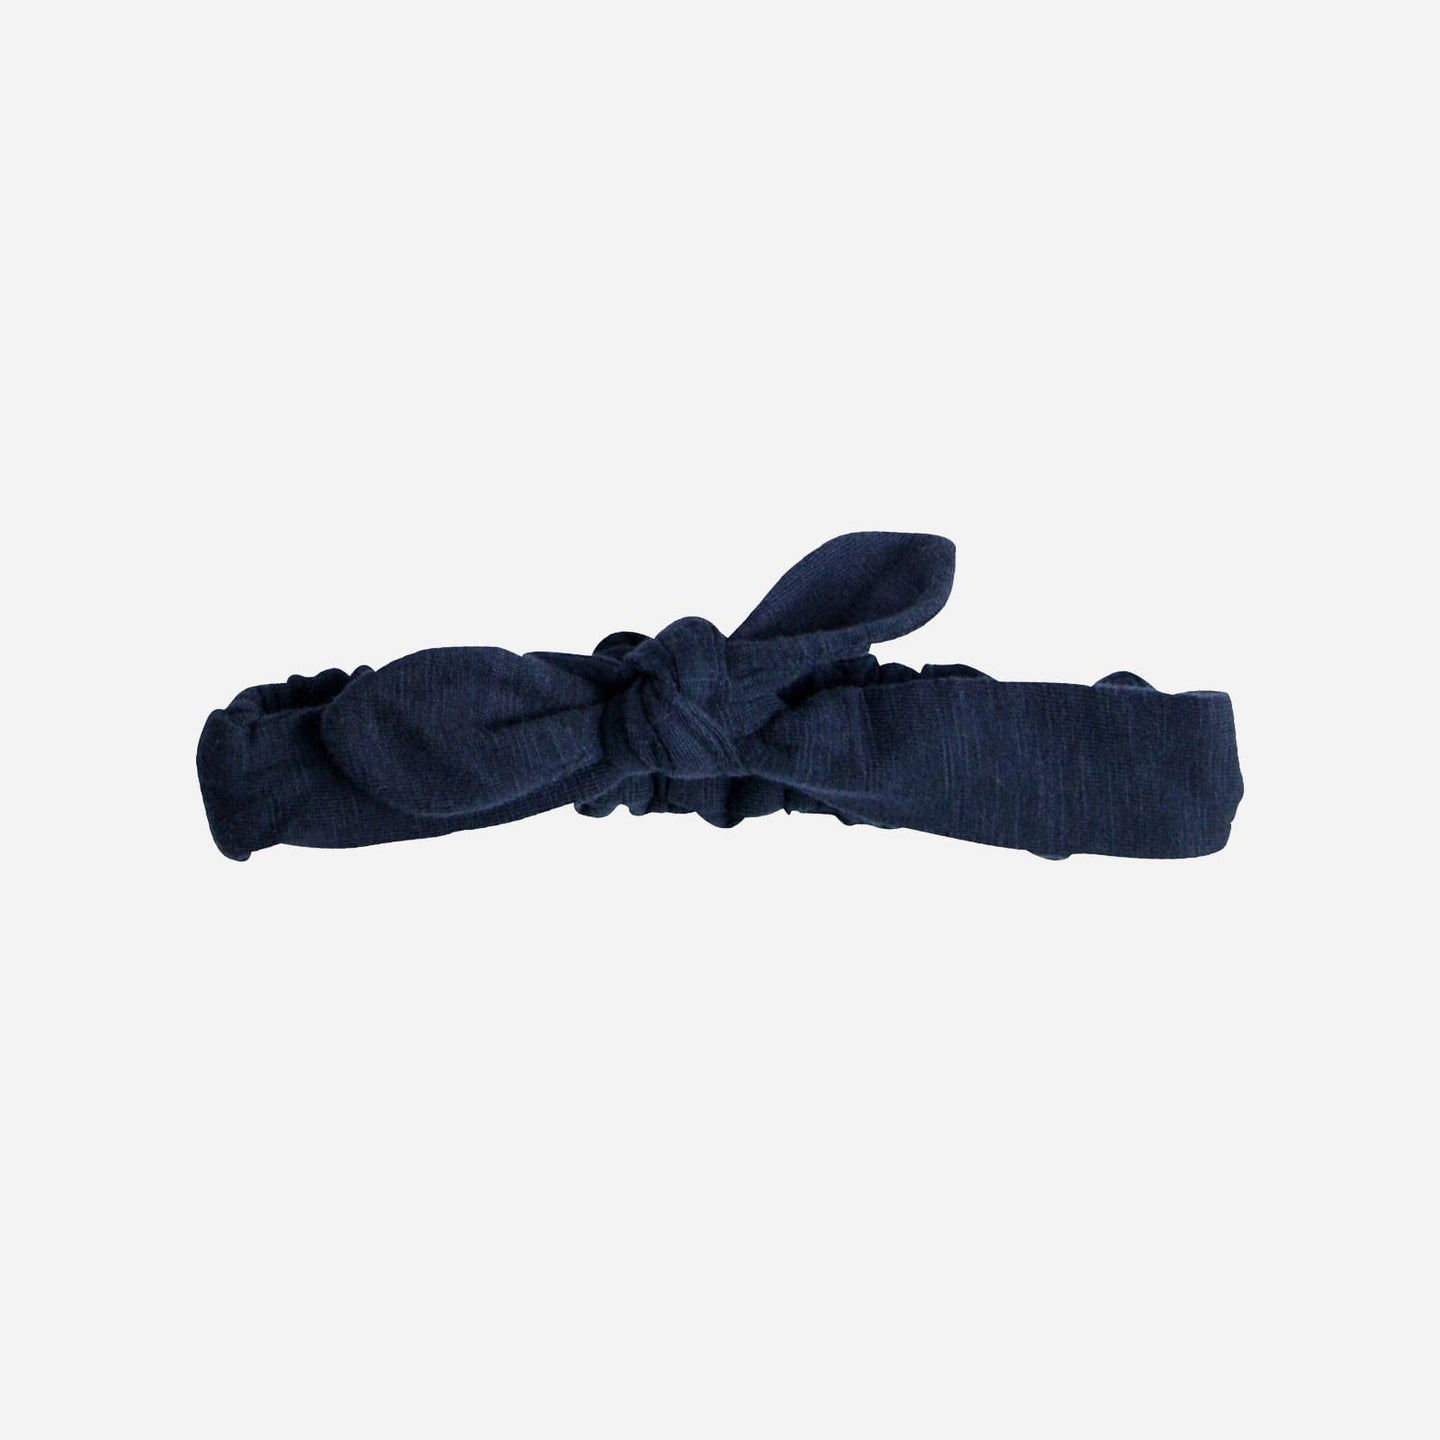 Love Henry Accessories Girls Head Band - Navy